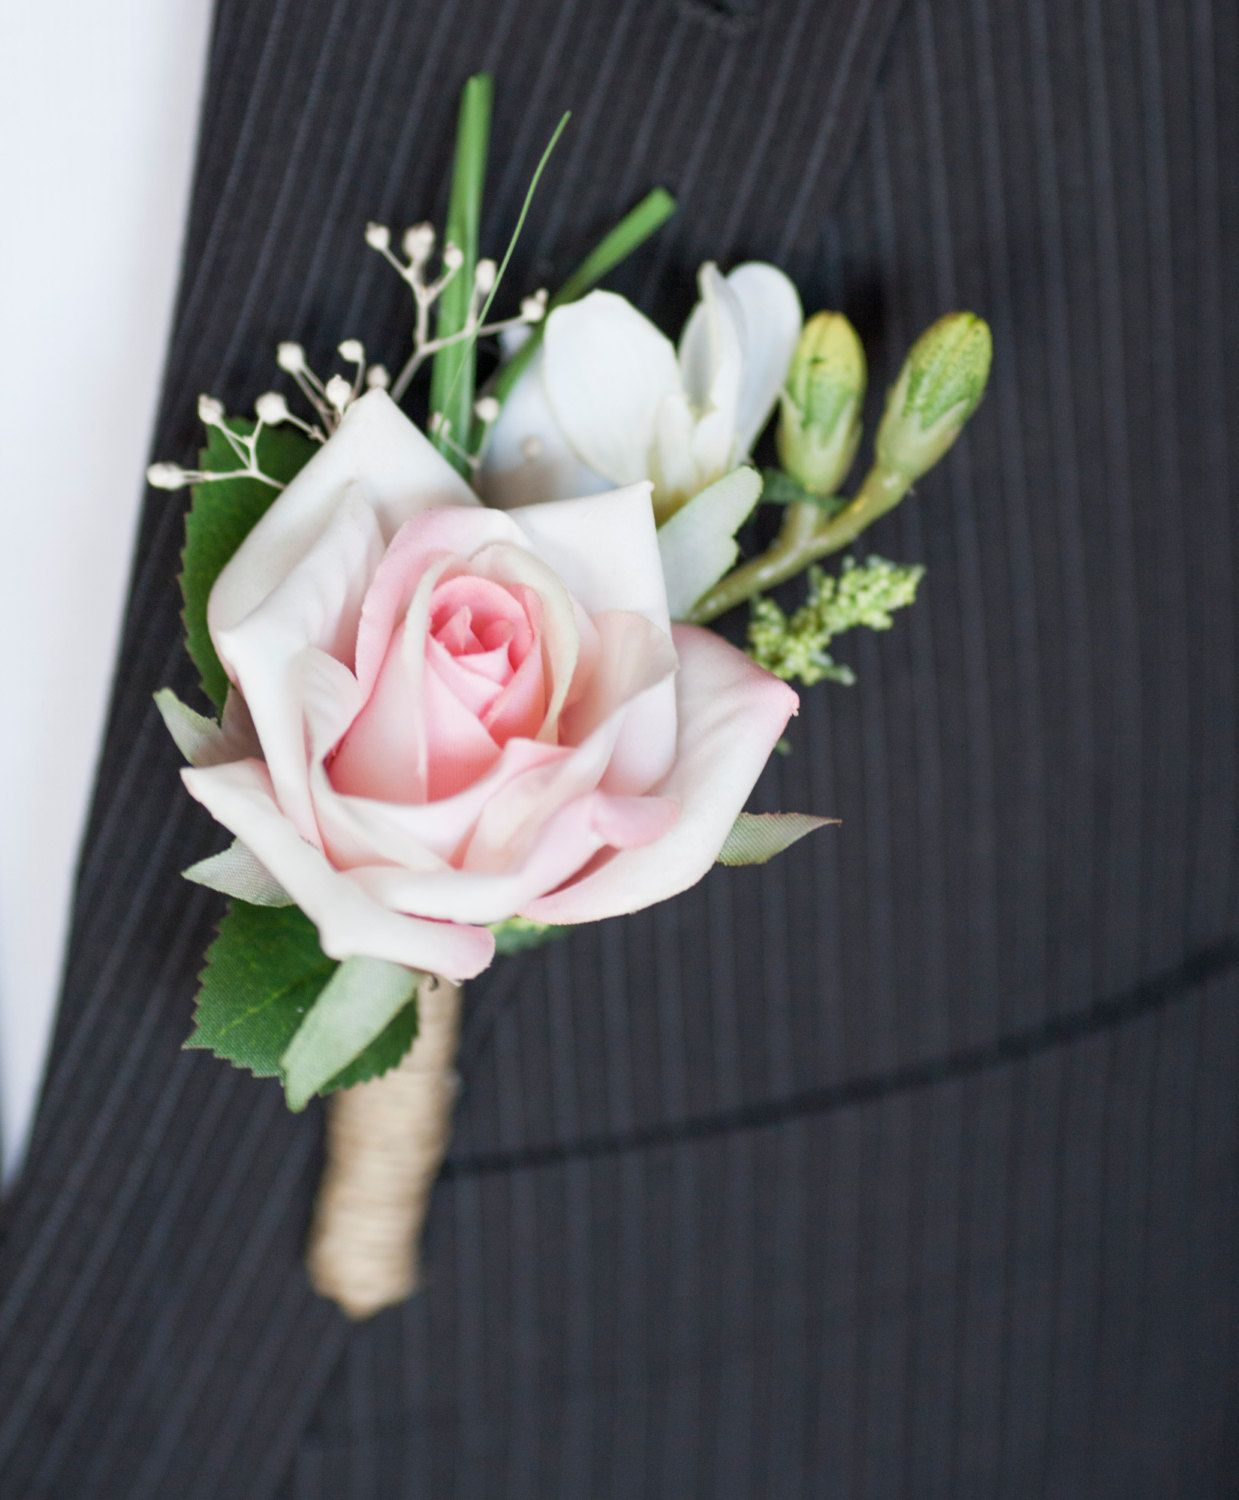 Garden Rose Boutonniere men's wedding pink boutonniere. | wedding ideas | pinterest | pink